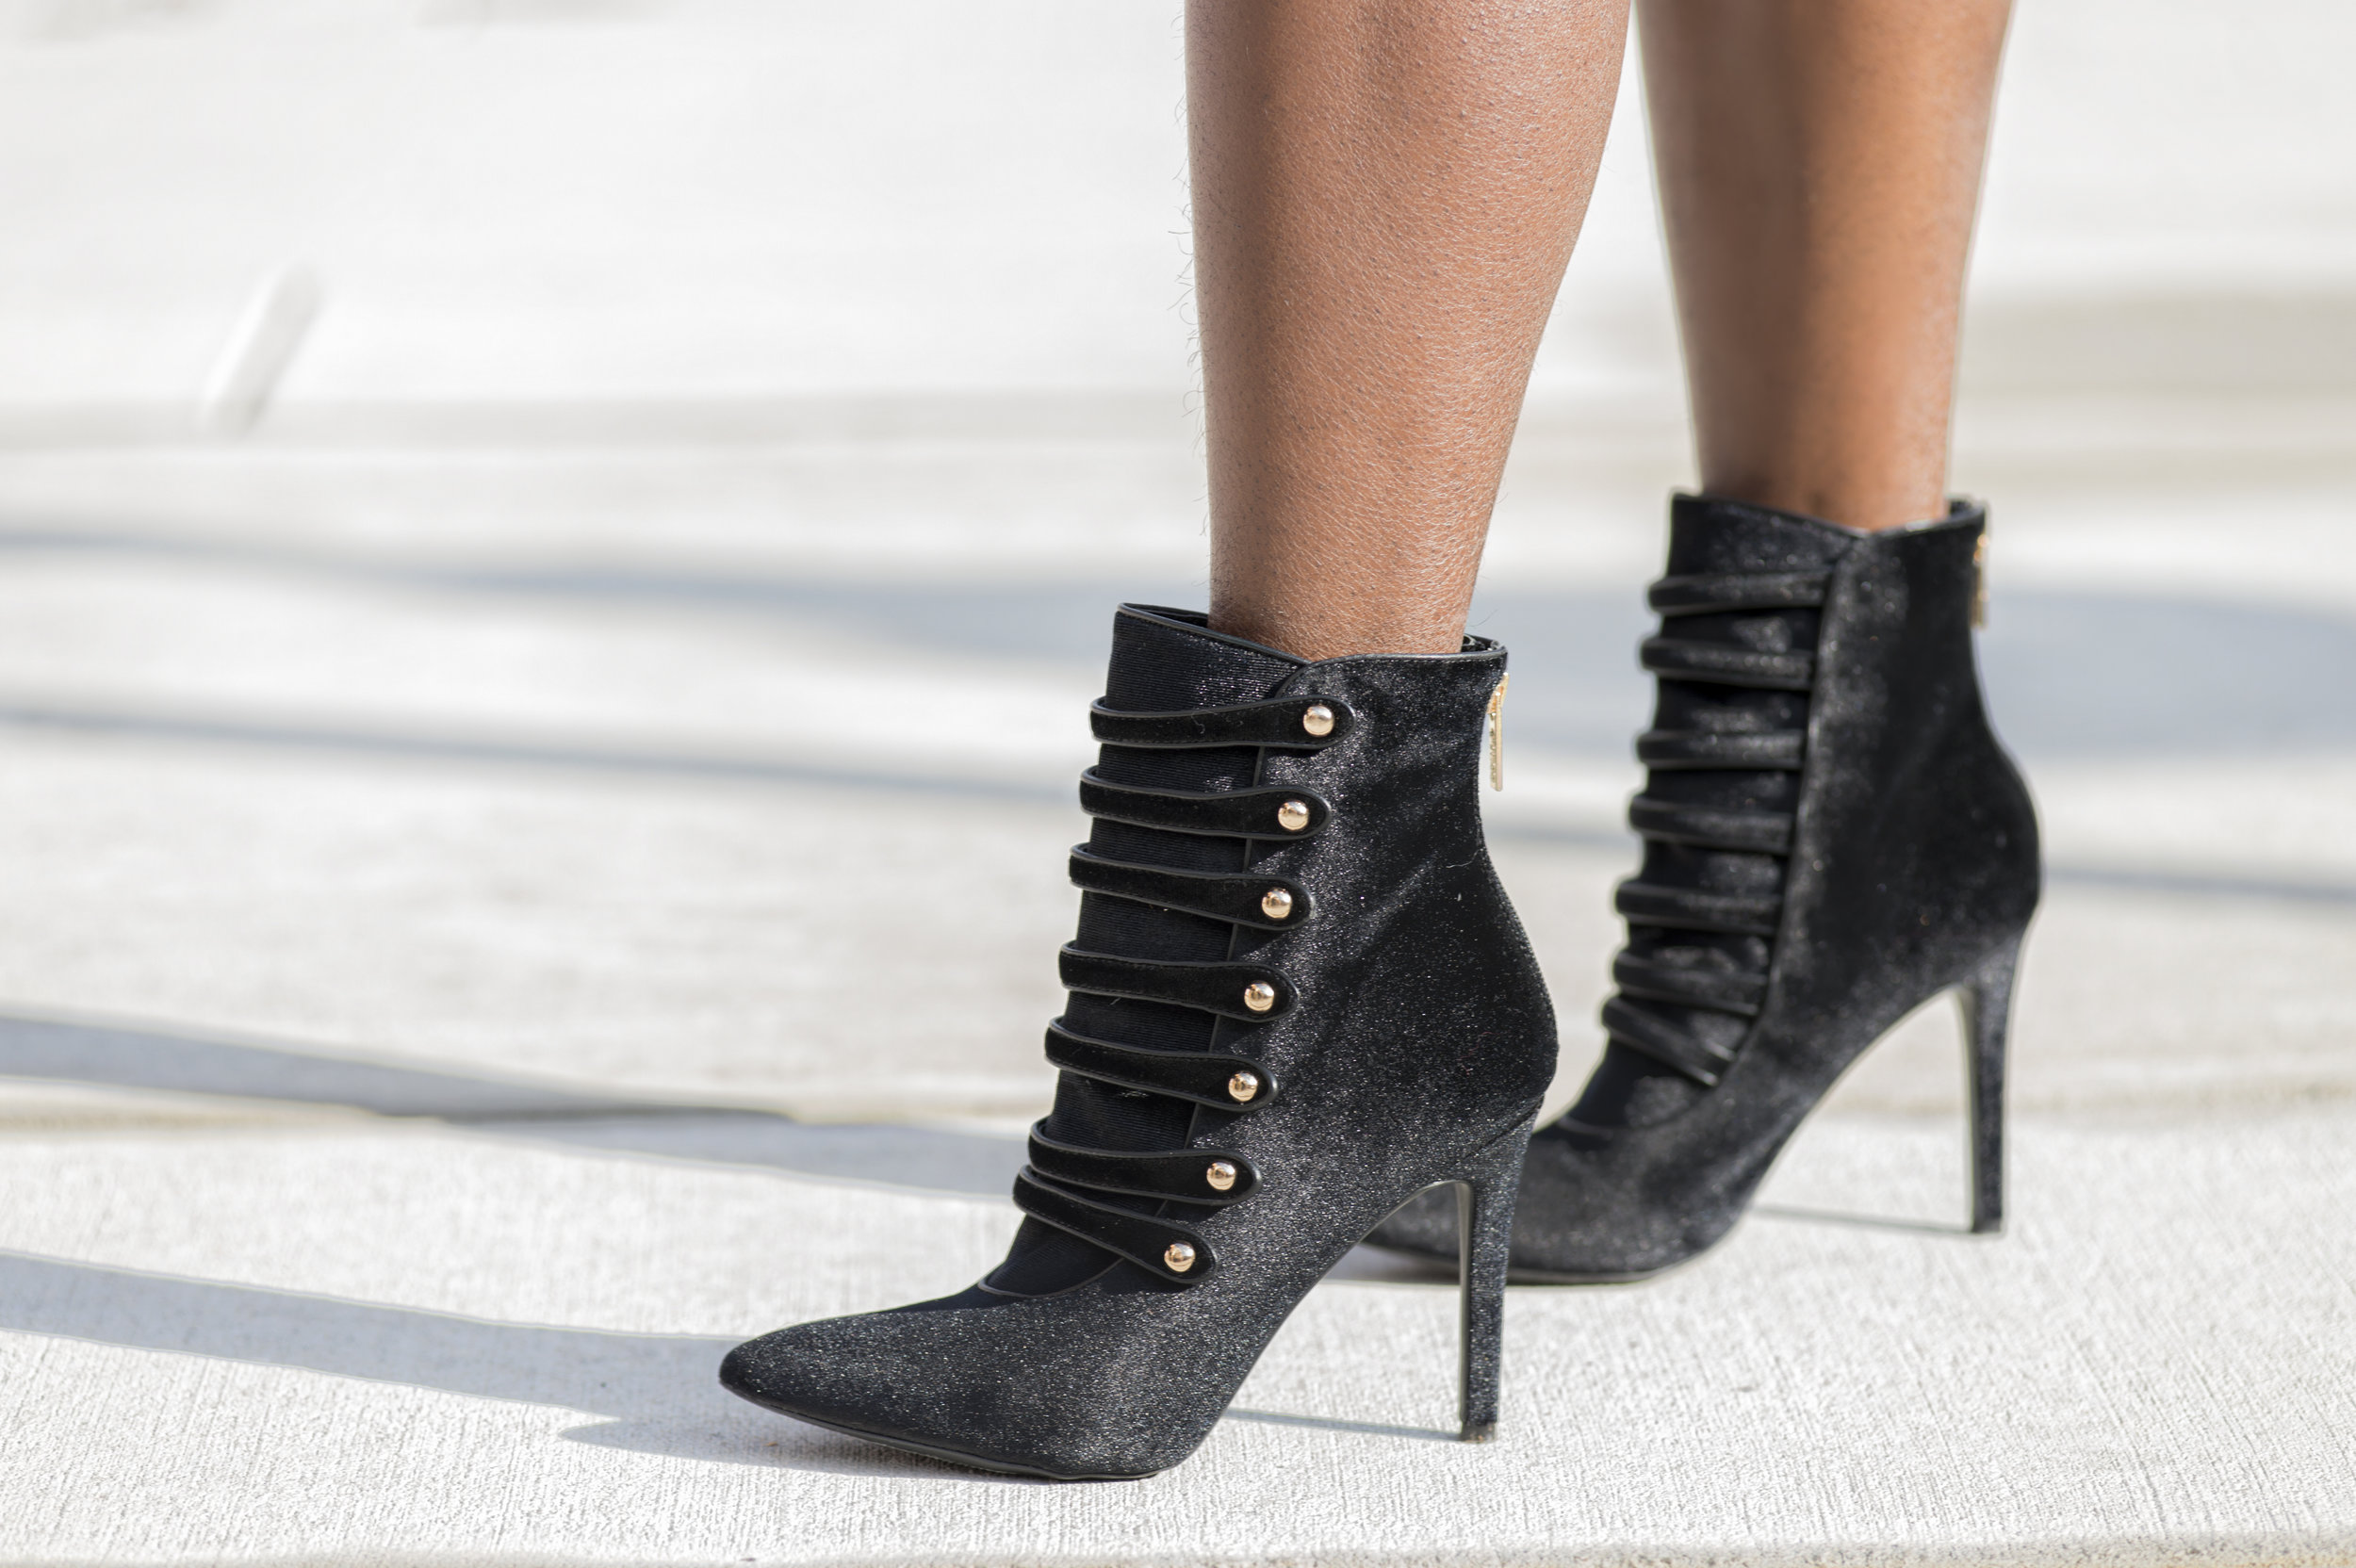 DSW-booties-holiday-dayna-bolden.JPG